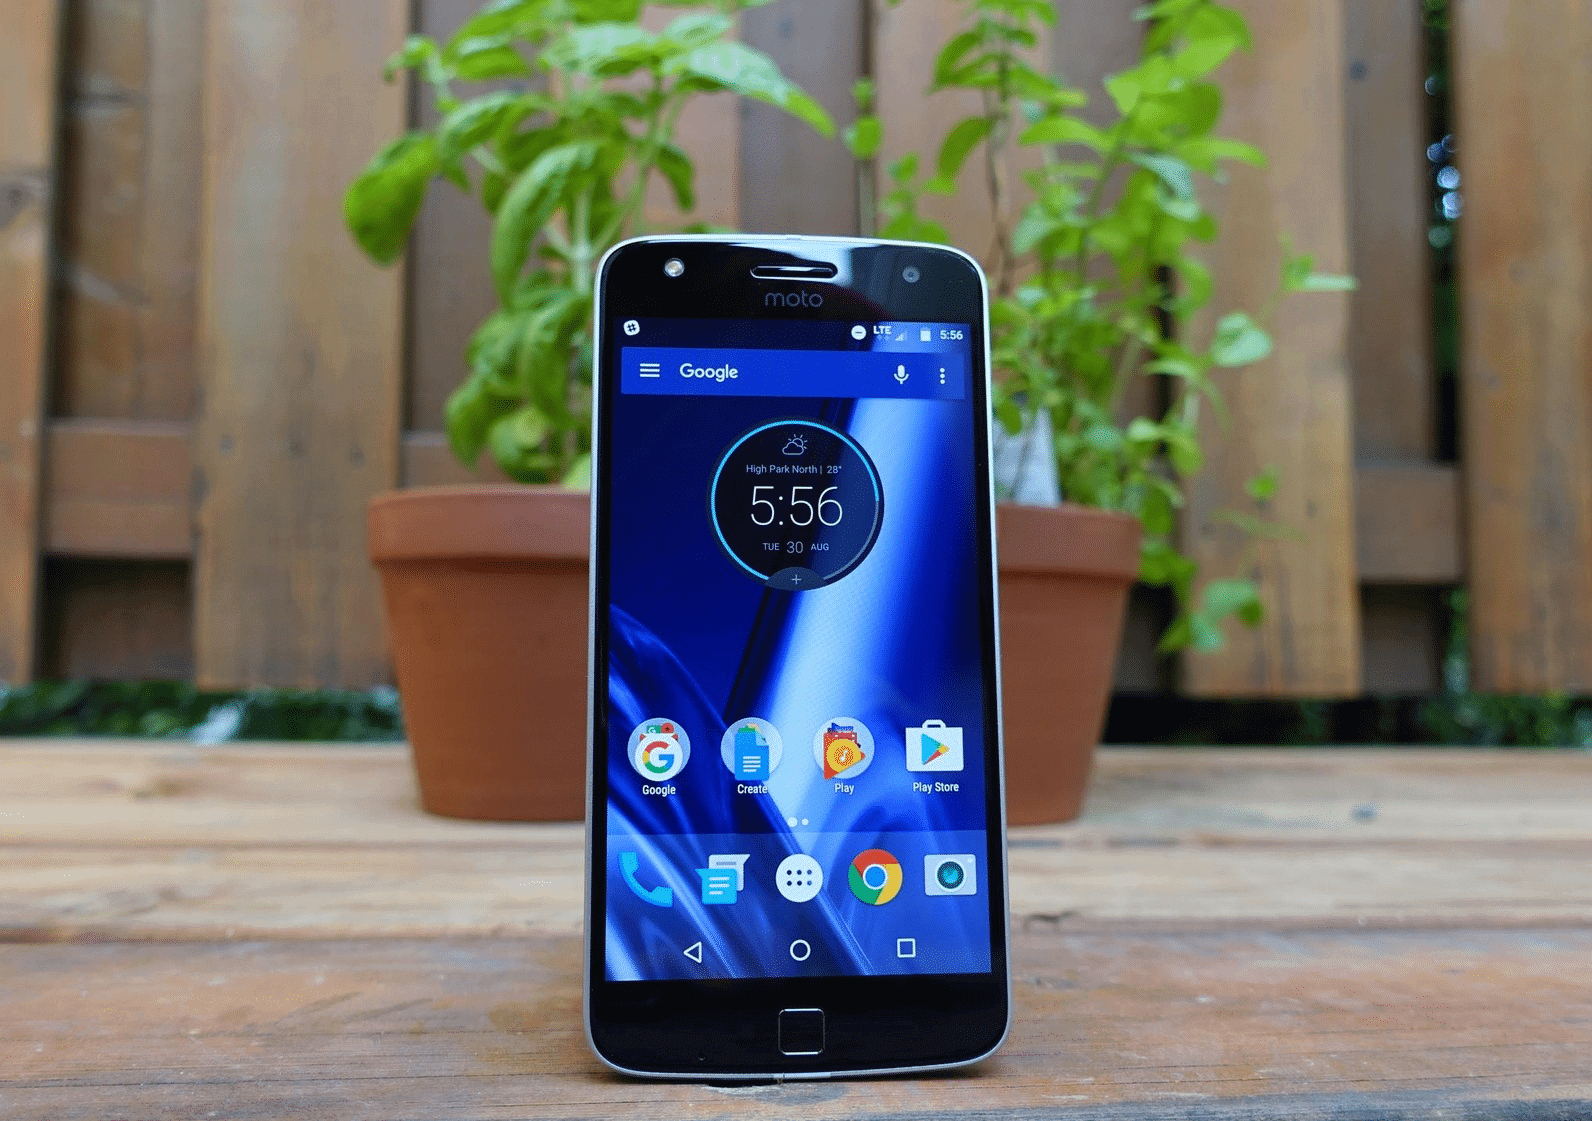 Moto-Z-Play-updated-on-Android-7.1.1-Nougat-official-update-11